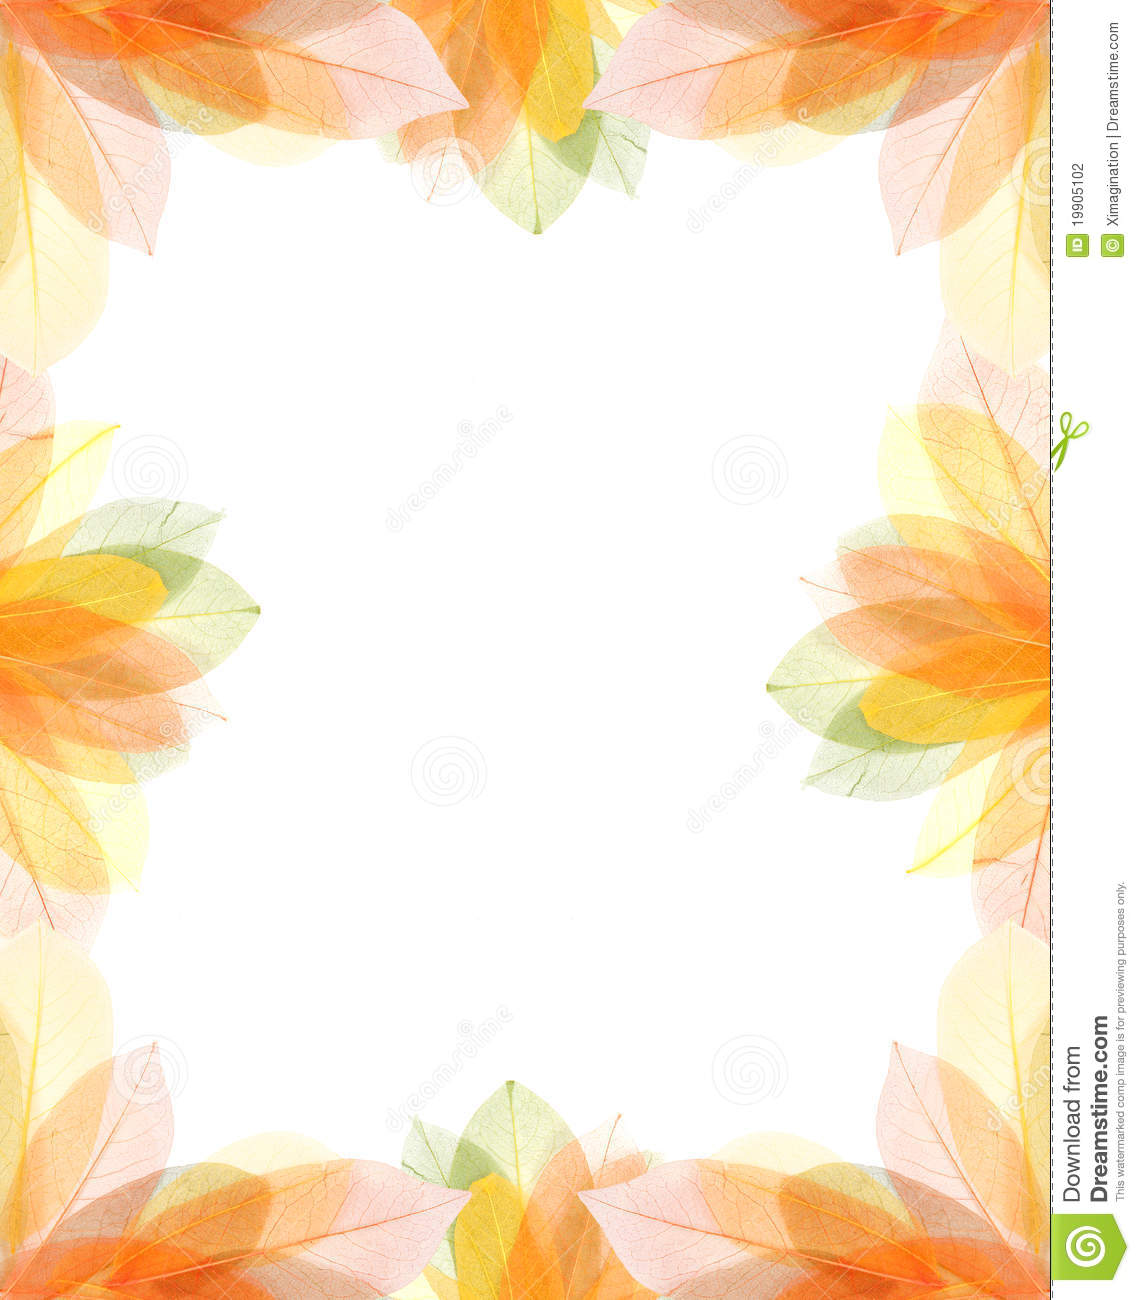 transparent autumn leaves frame